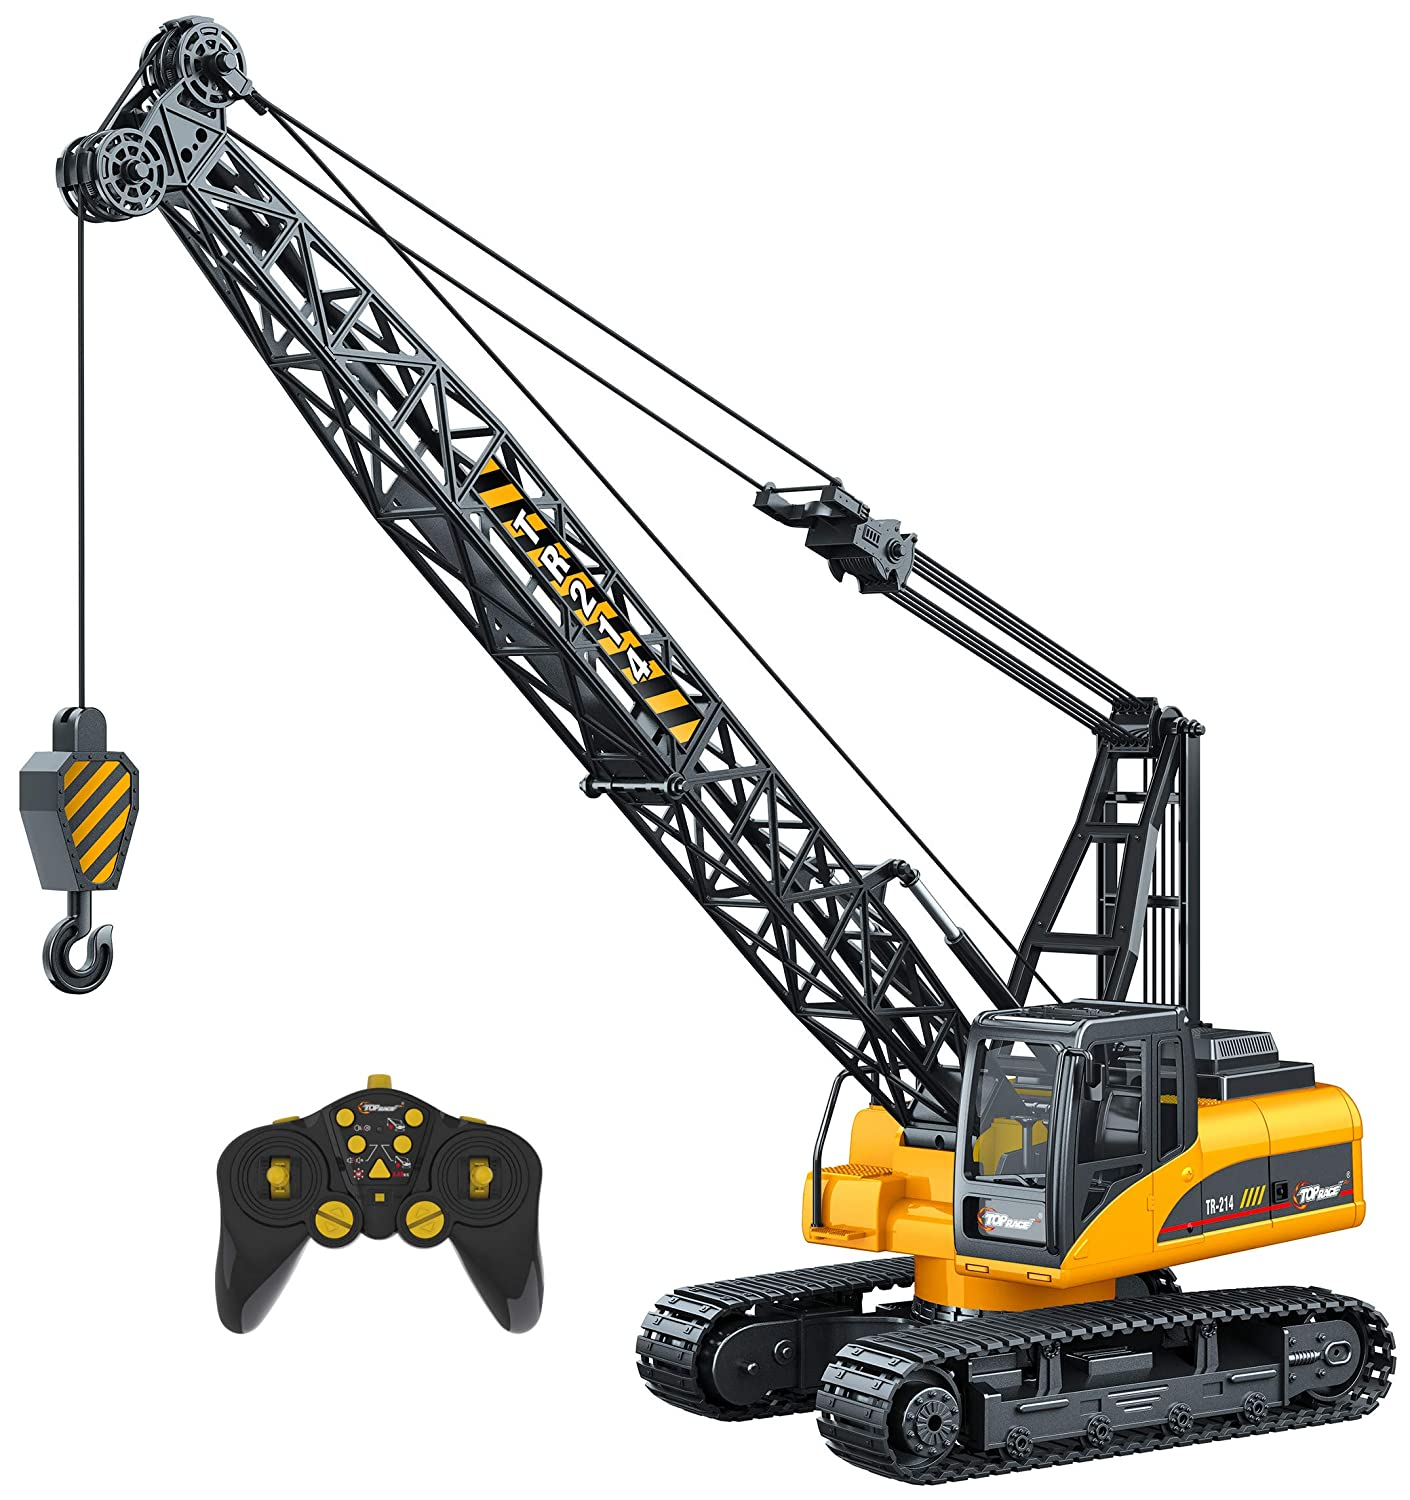 Top 9 Best Remote Control Cranes Toys Reviews in 2020 4